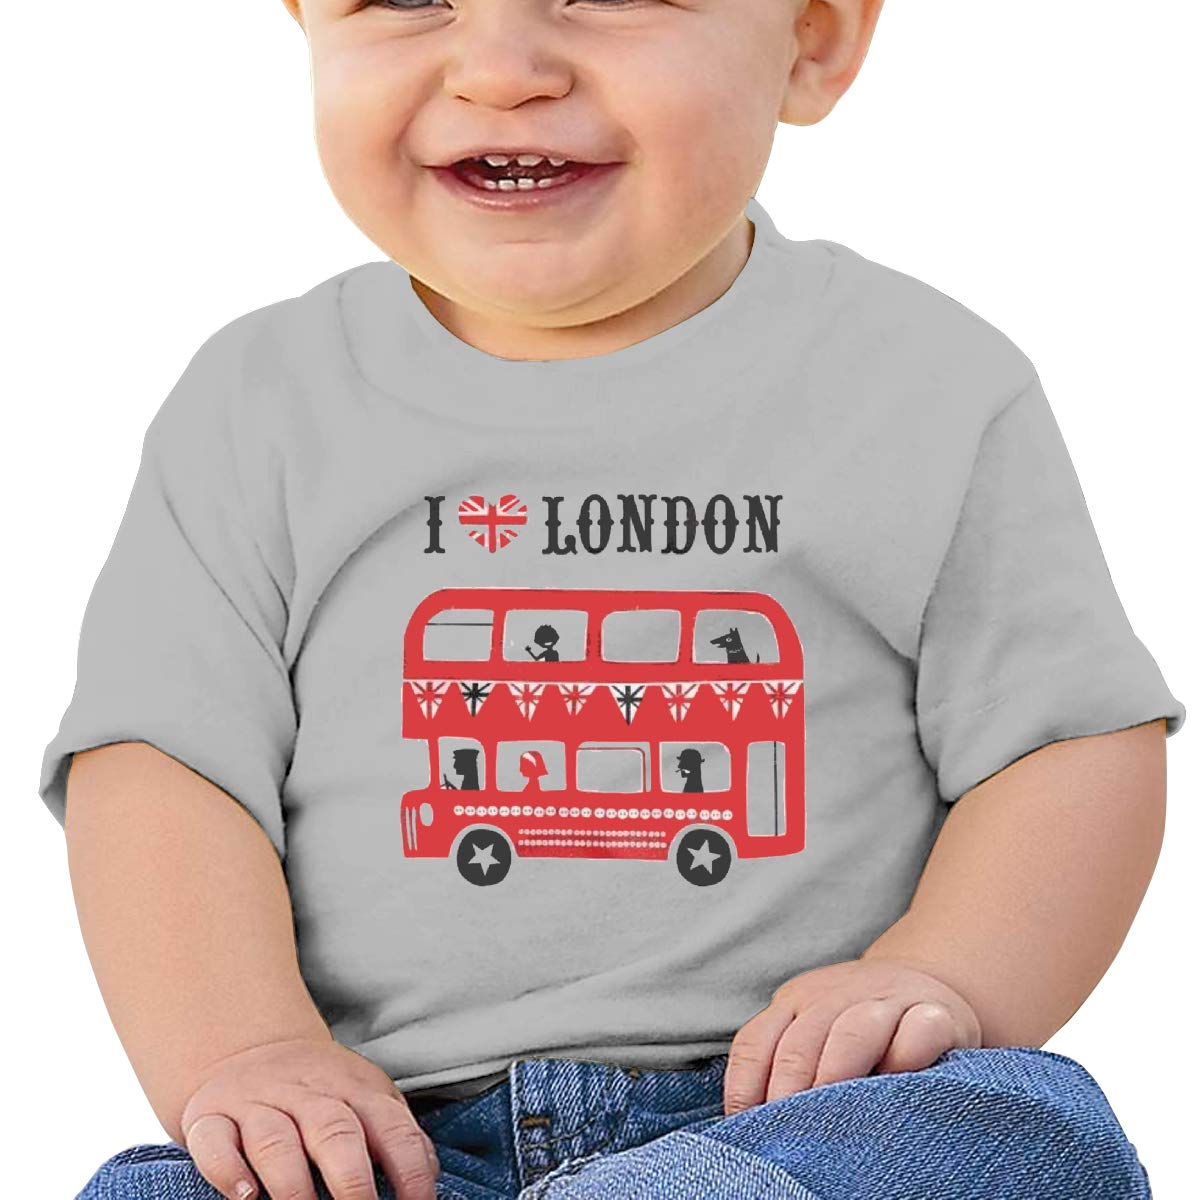 I Love London Baby T-Shirt Toddler//Infant Cotton T Shirts Fashion Graphic T-Shirt for 6M-2T Baby